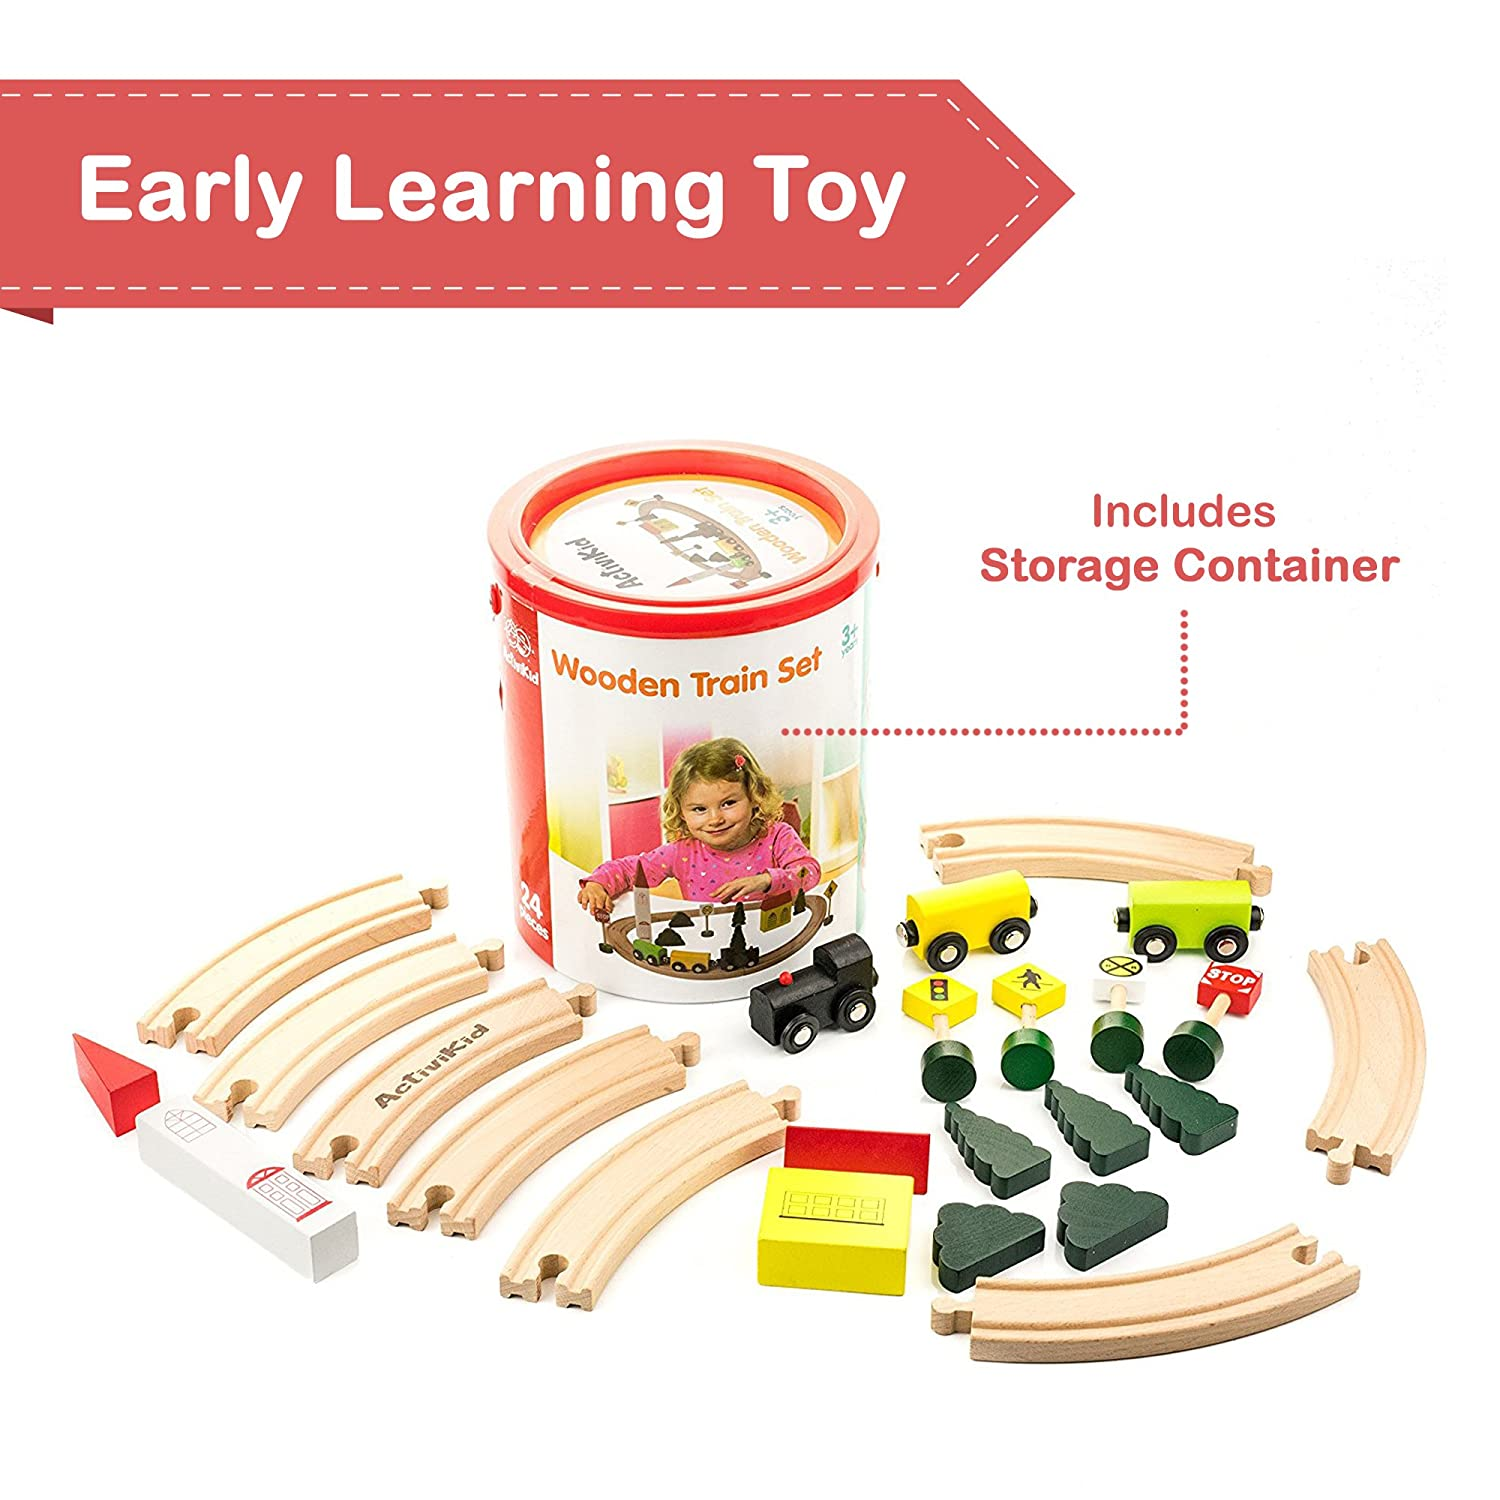 Buildings Includes Storage Container Tracks Early Learning Toys for Kids Trains Signs ActiviKid Wooden Train Set Cars Tracks Colorful City with Caboose Trees 24-piece Small